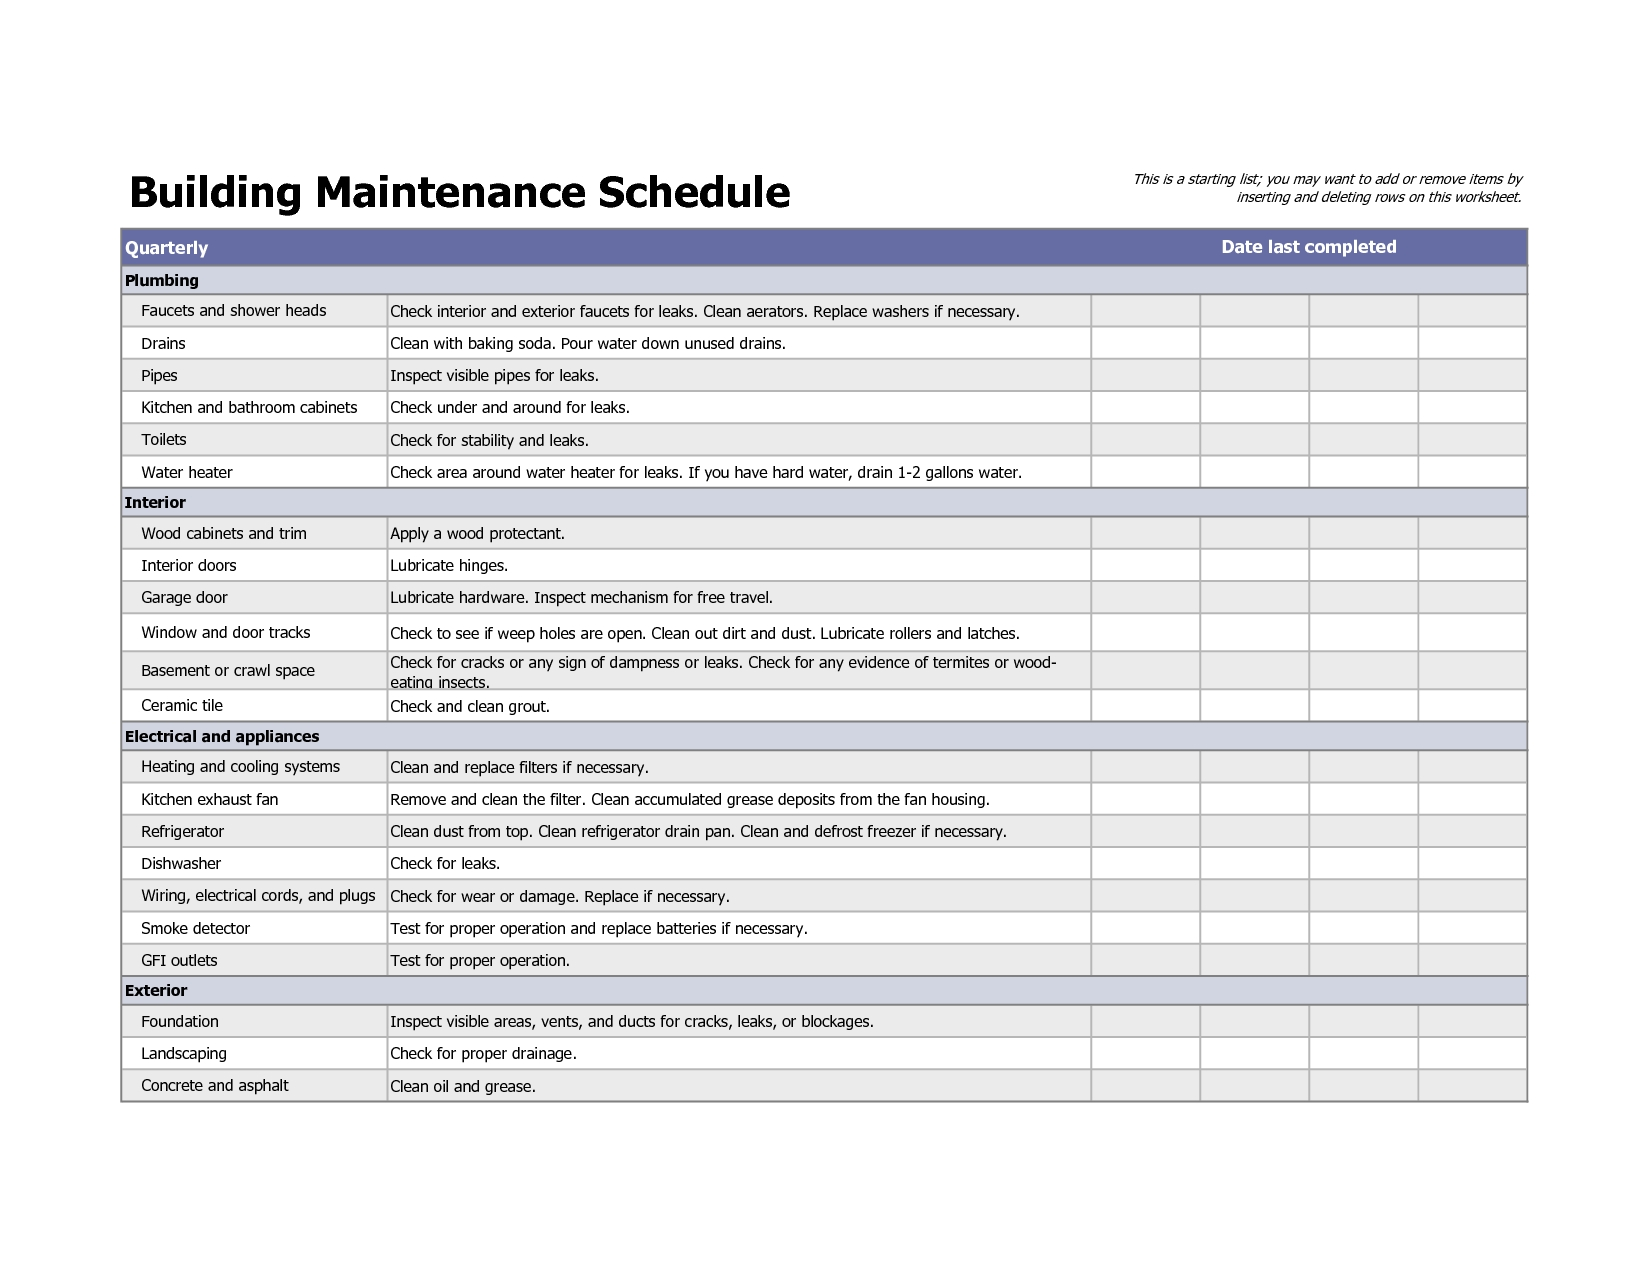 Building maintenance schedule excel template planner for Property site plan software